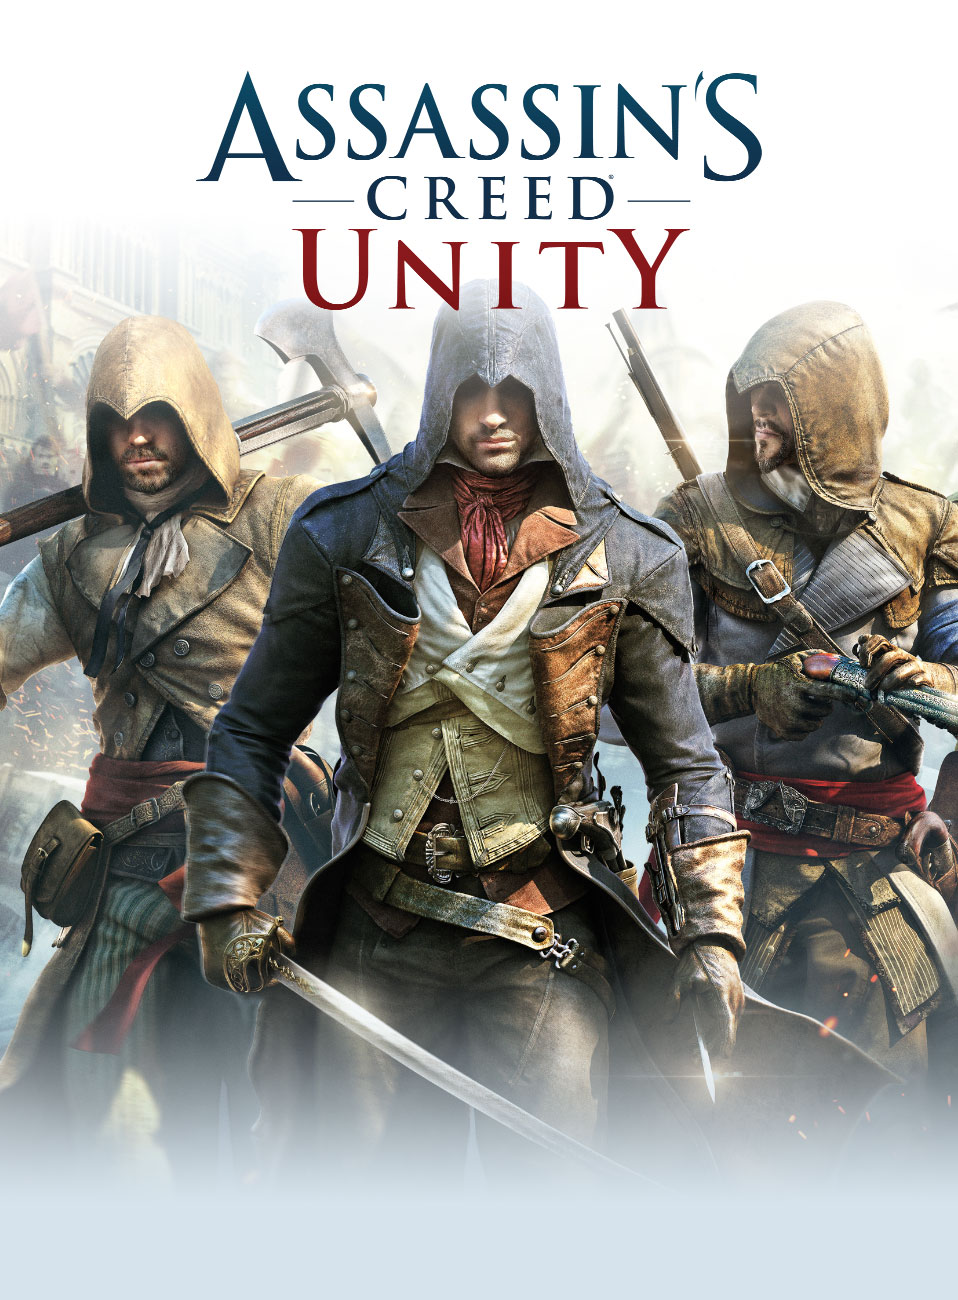 Assassins creed unity for Mobilia webhallen